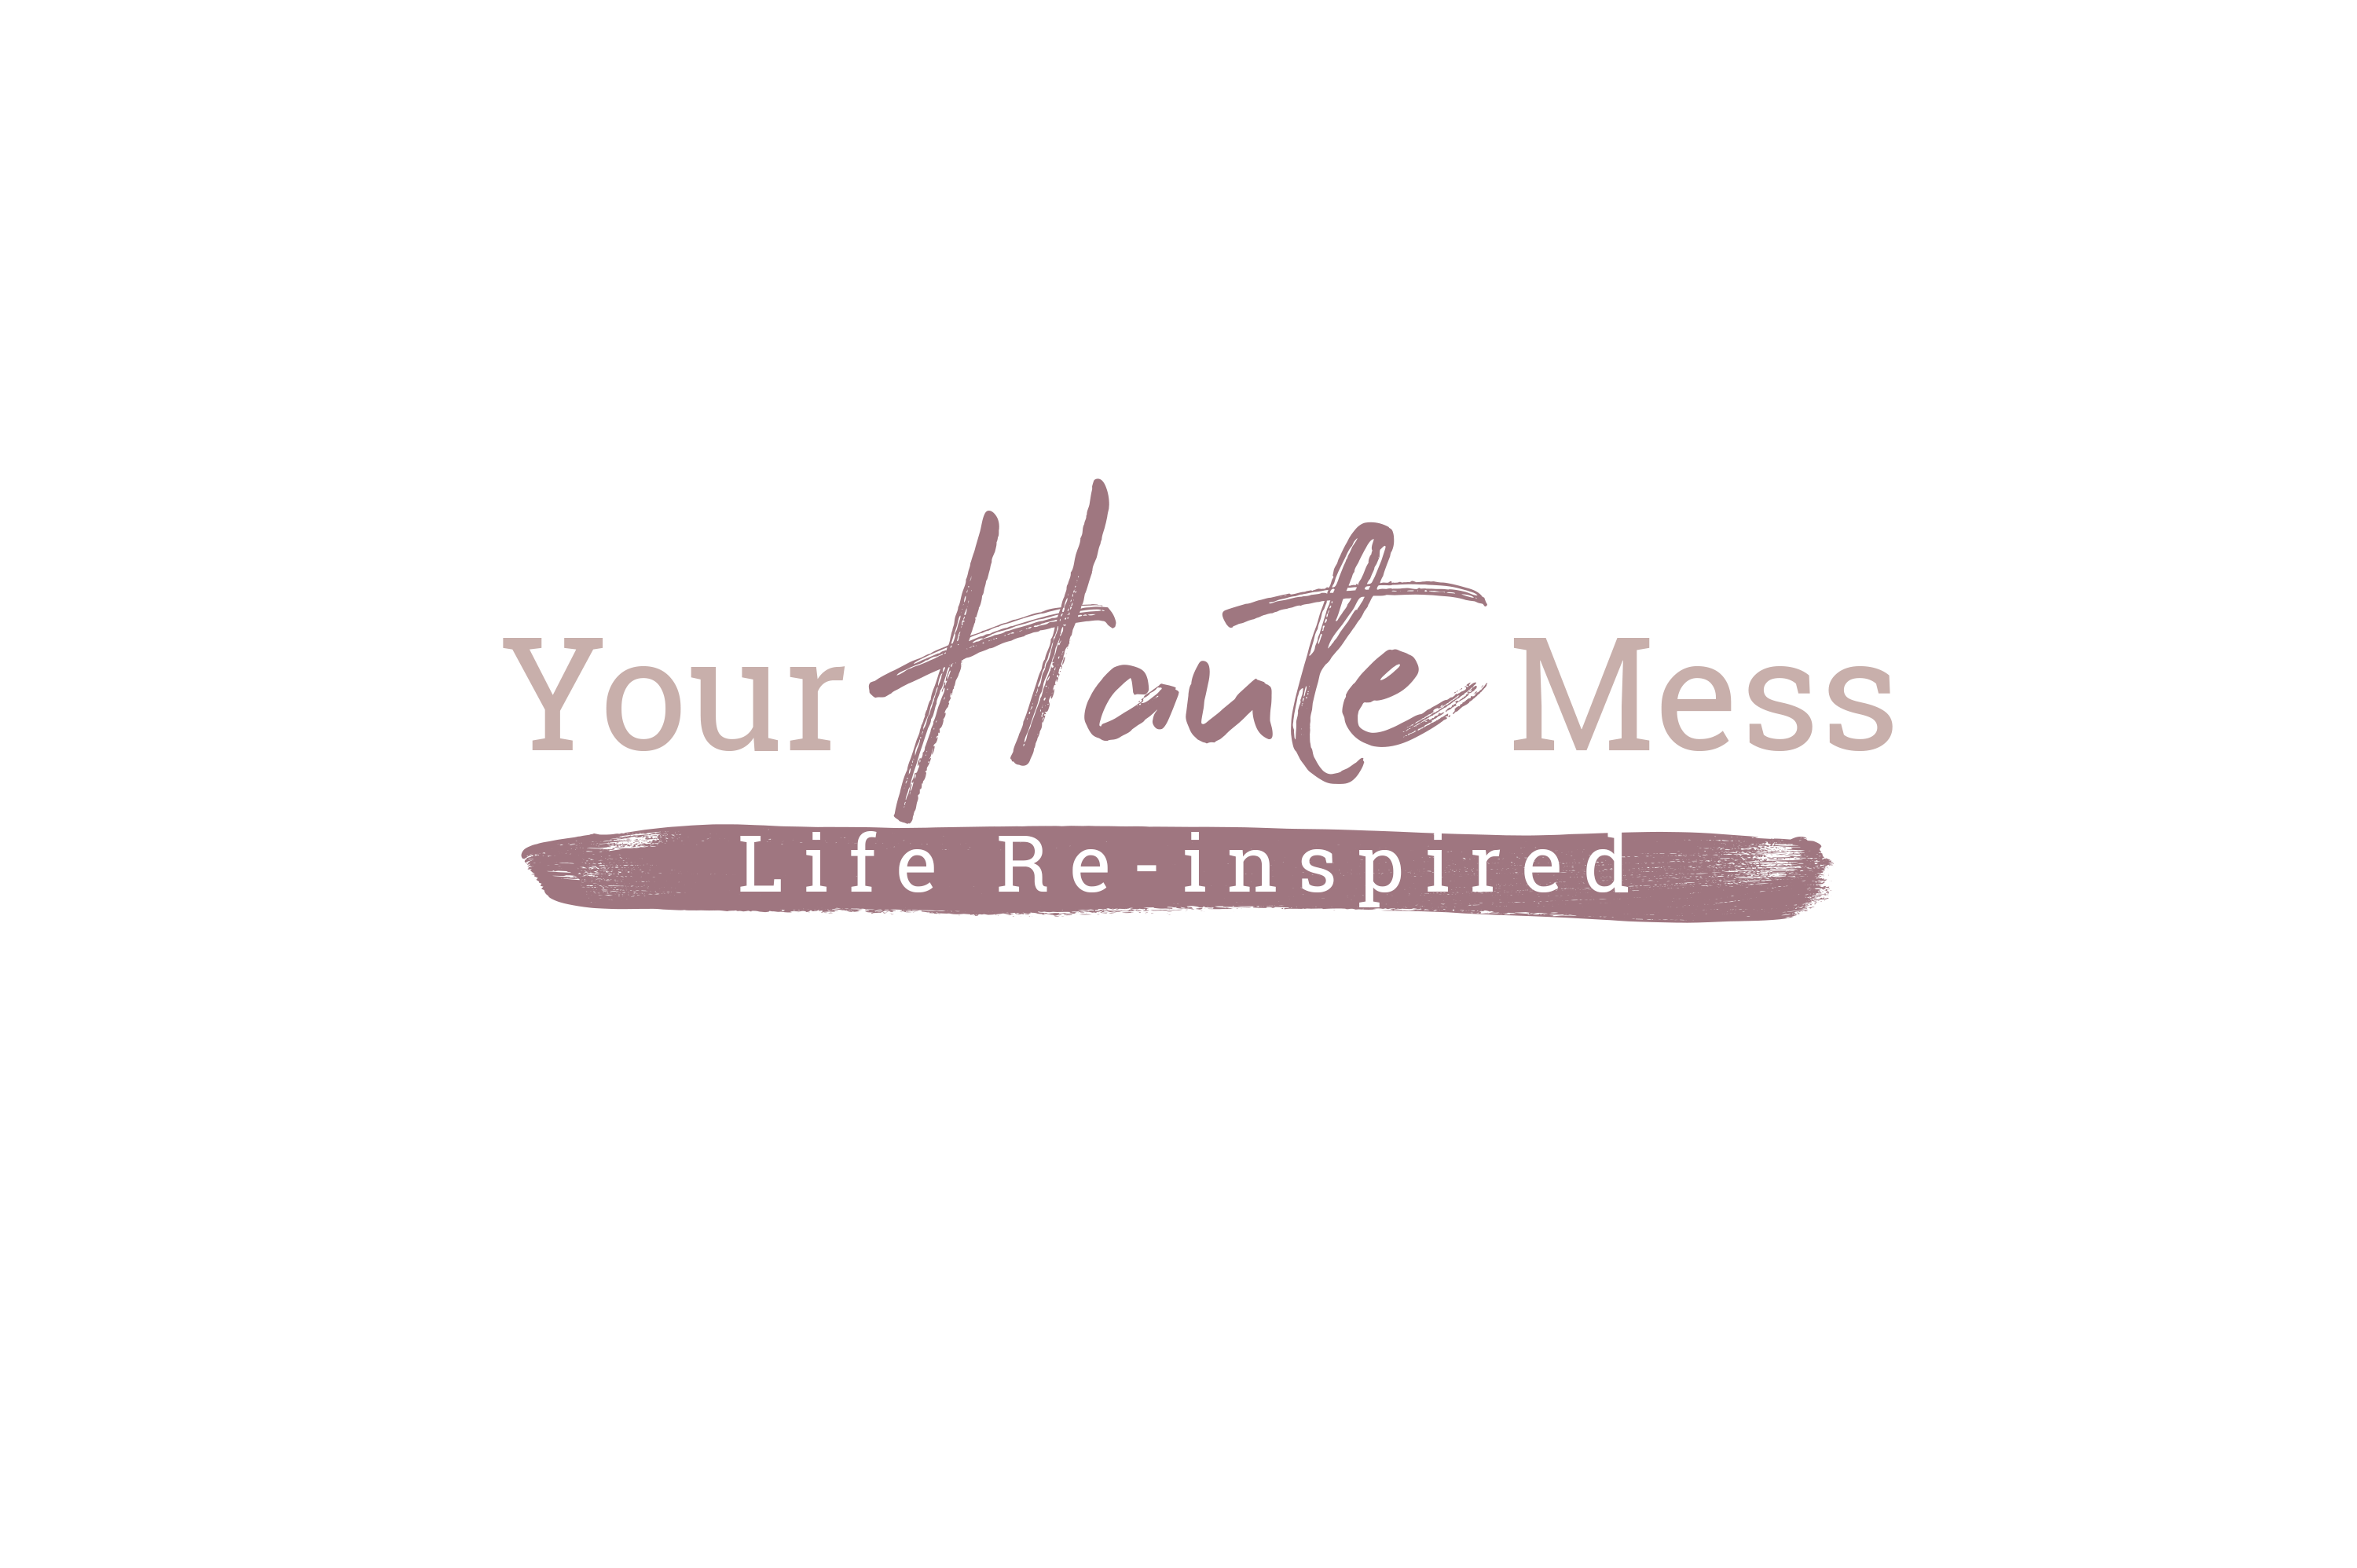 Your Haute Mess